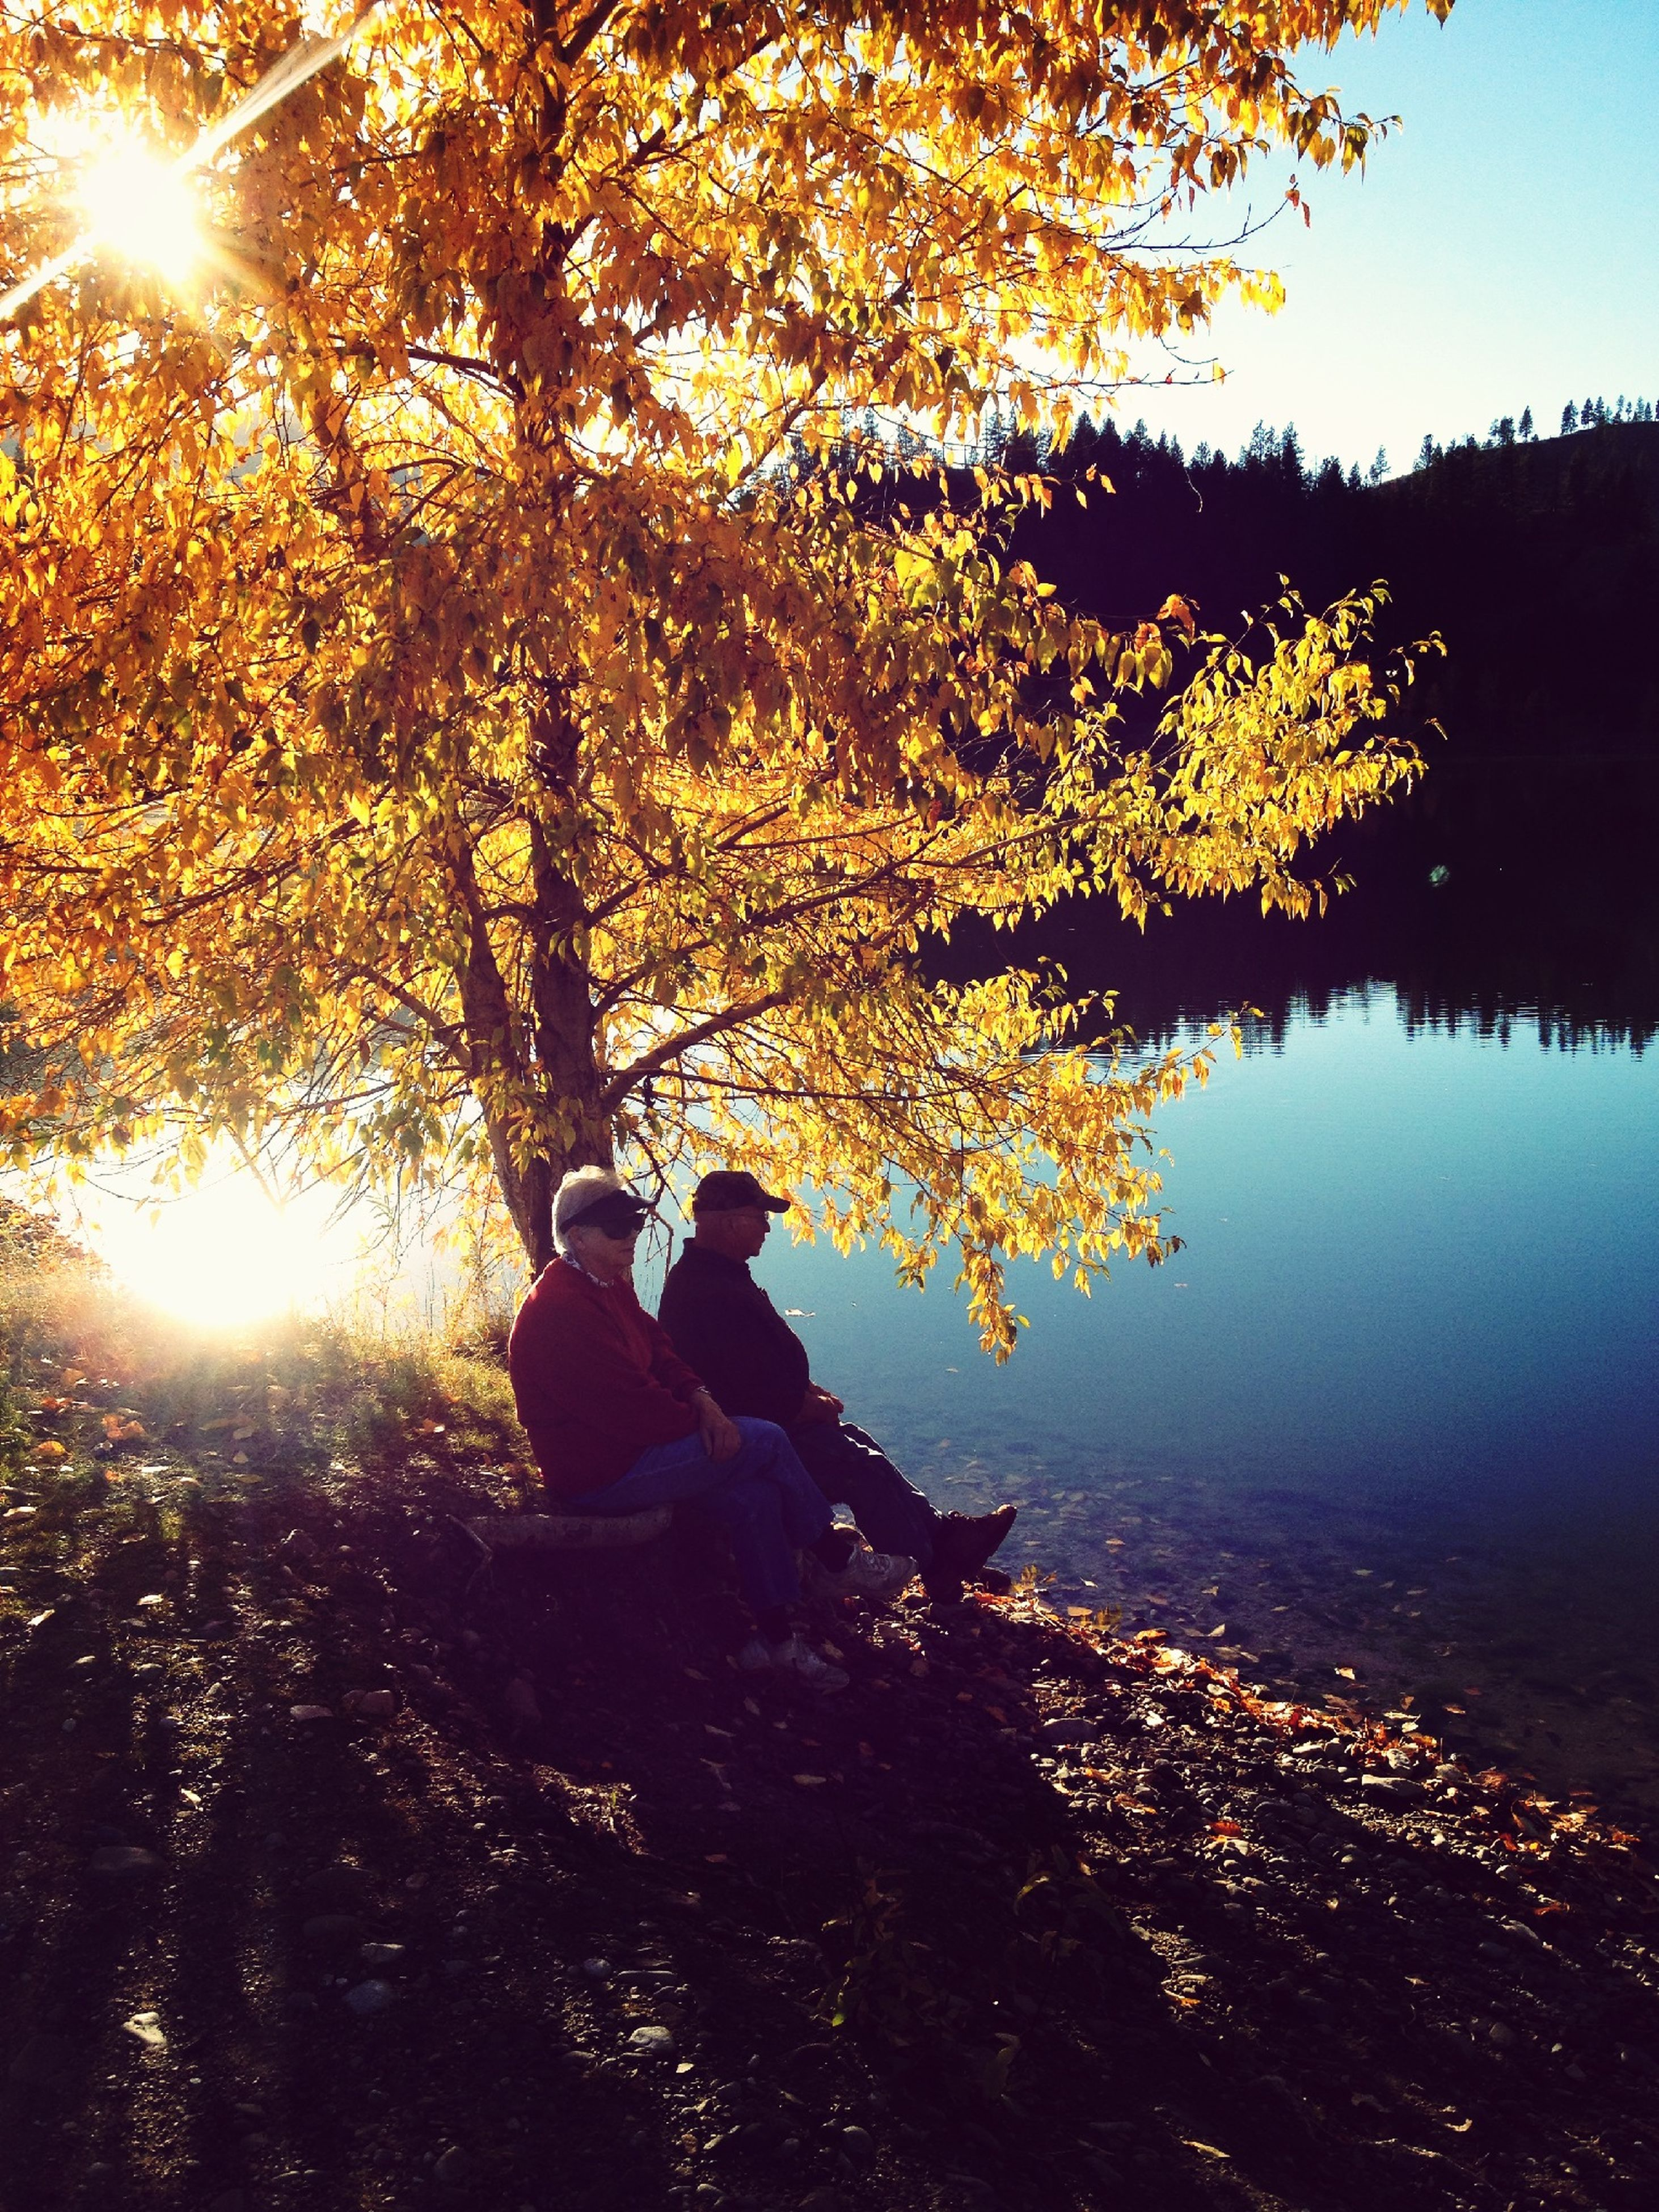 tree, sun, water, sunlight, silhouette, leisure activity, lifestyles, sunbeam, reflection, lake, lens flare, men, sunset, sitting, nature, tranquility, clear sky, rear view